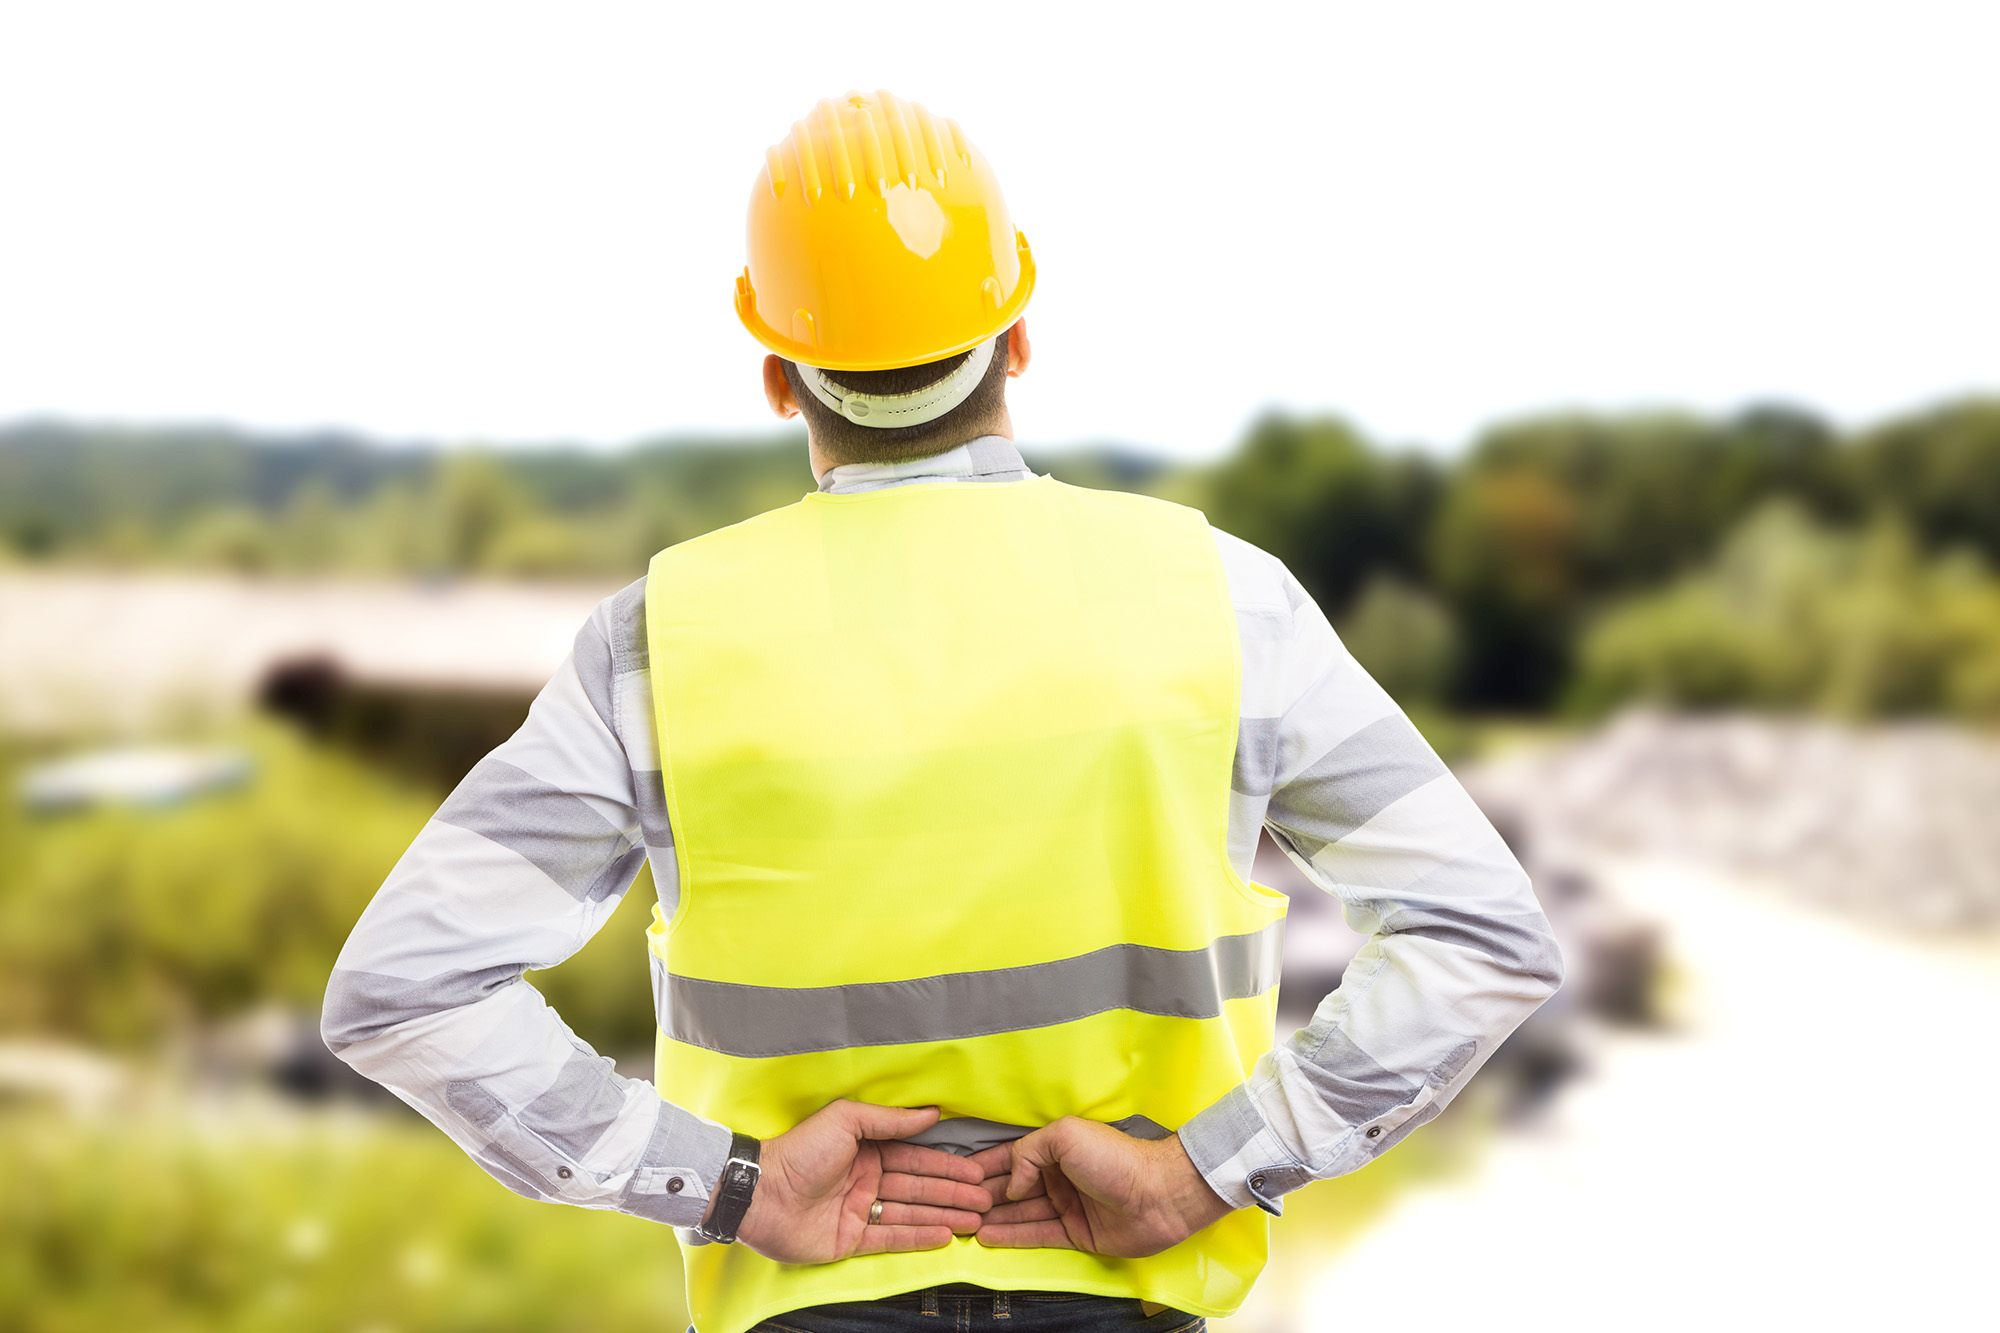 Injured construction worker or engineer suffering backpain in lower back area outdoor at work